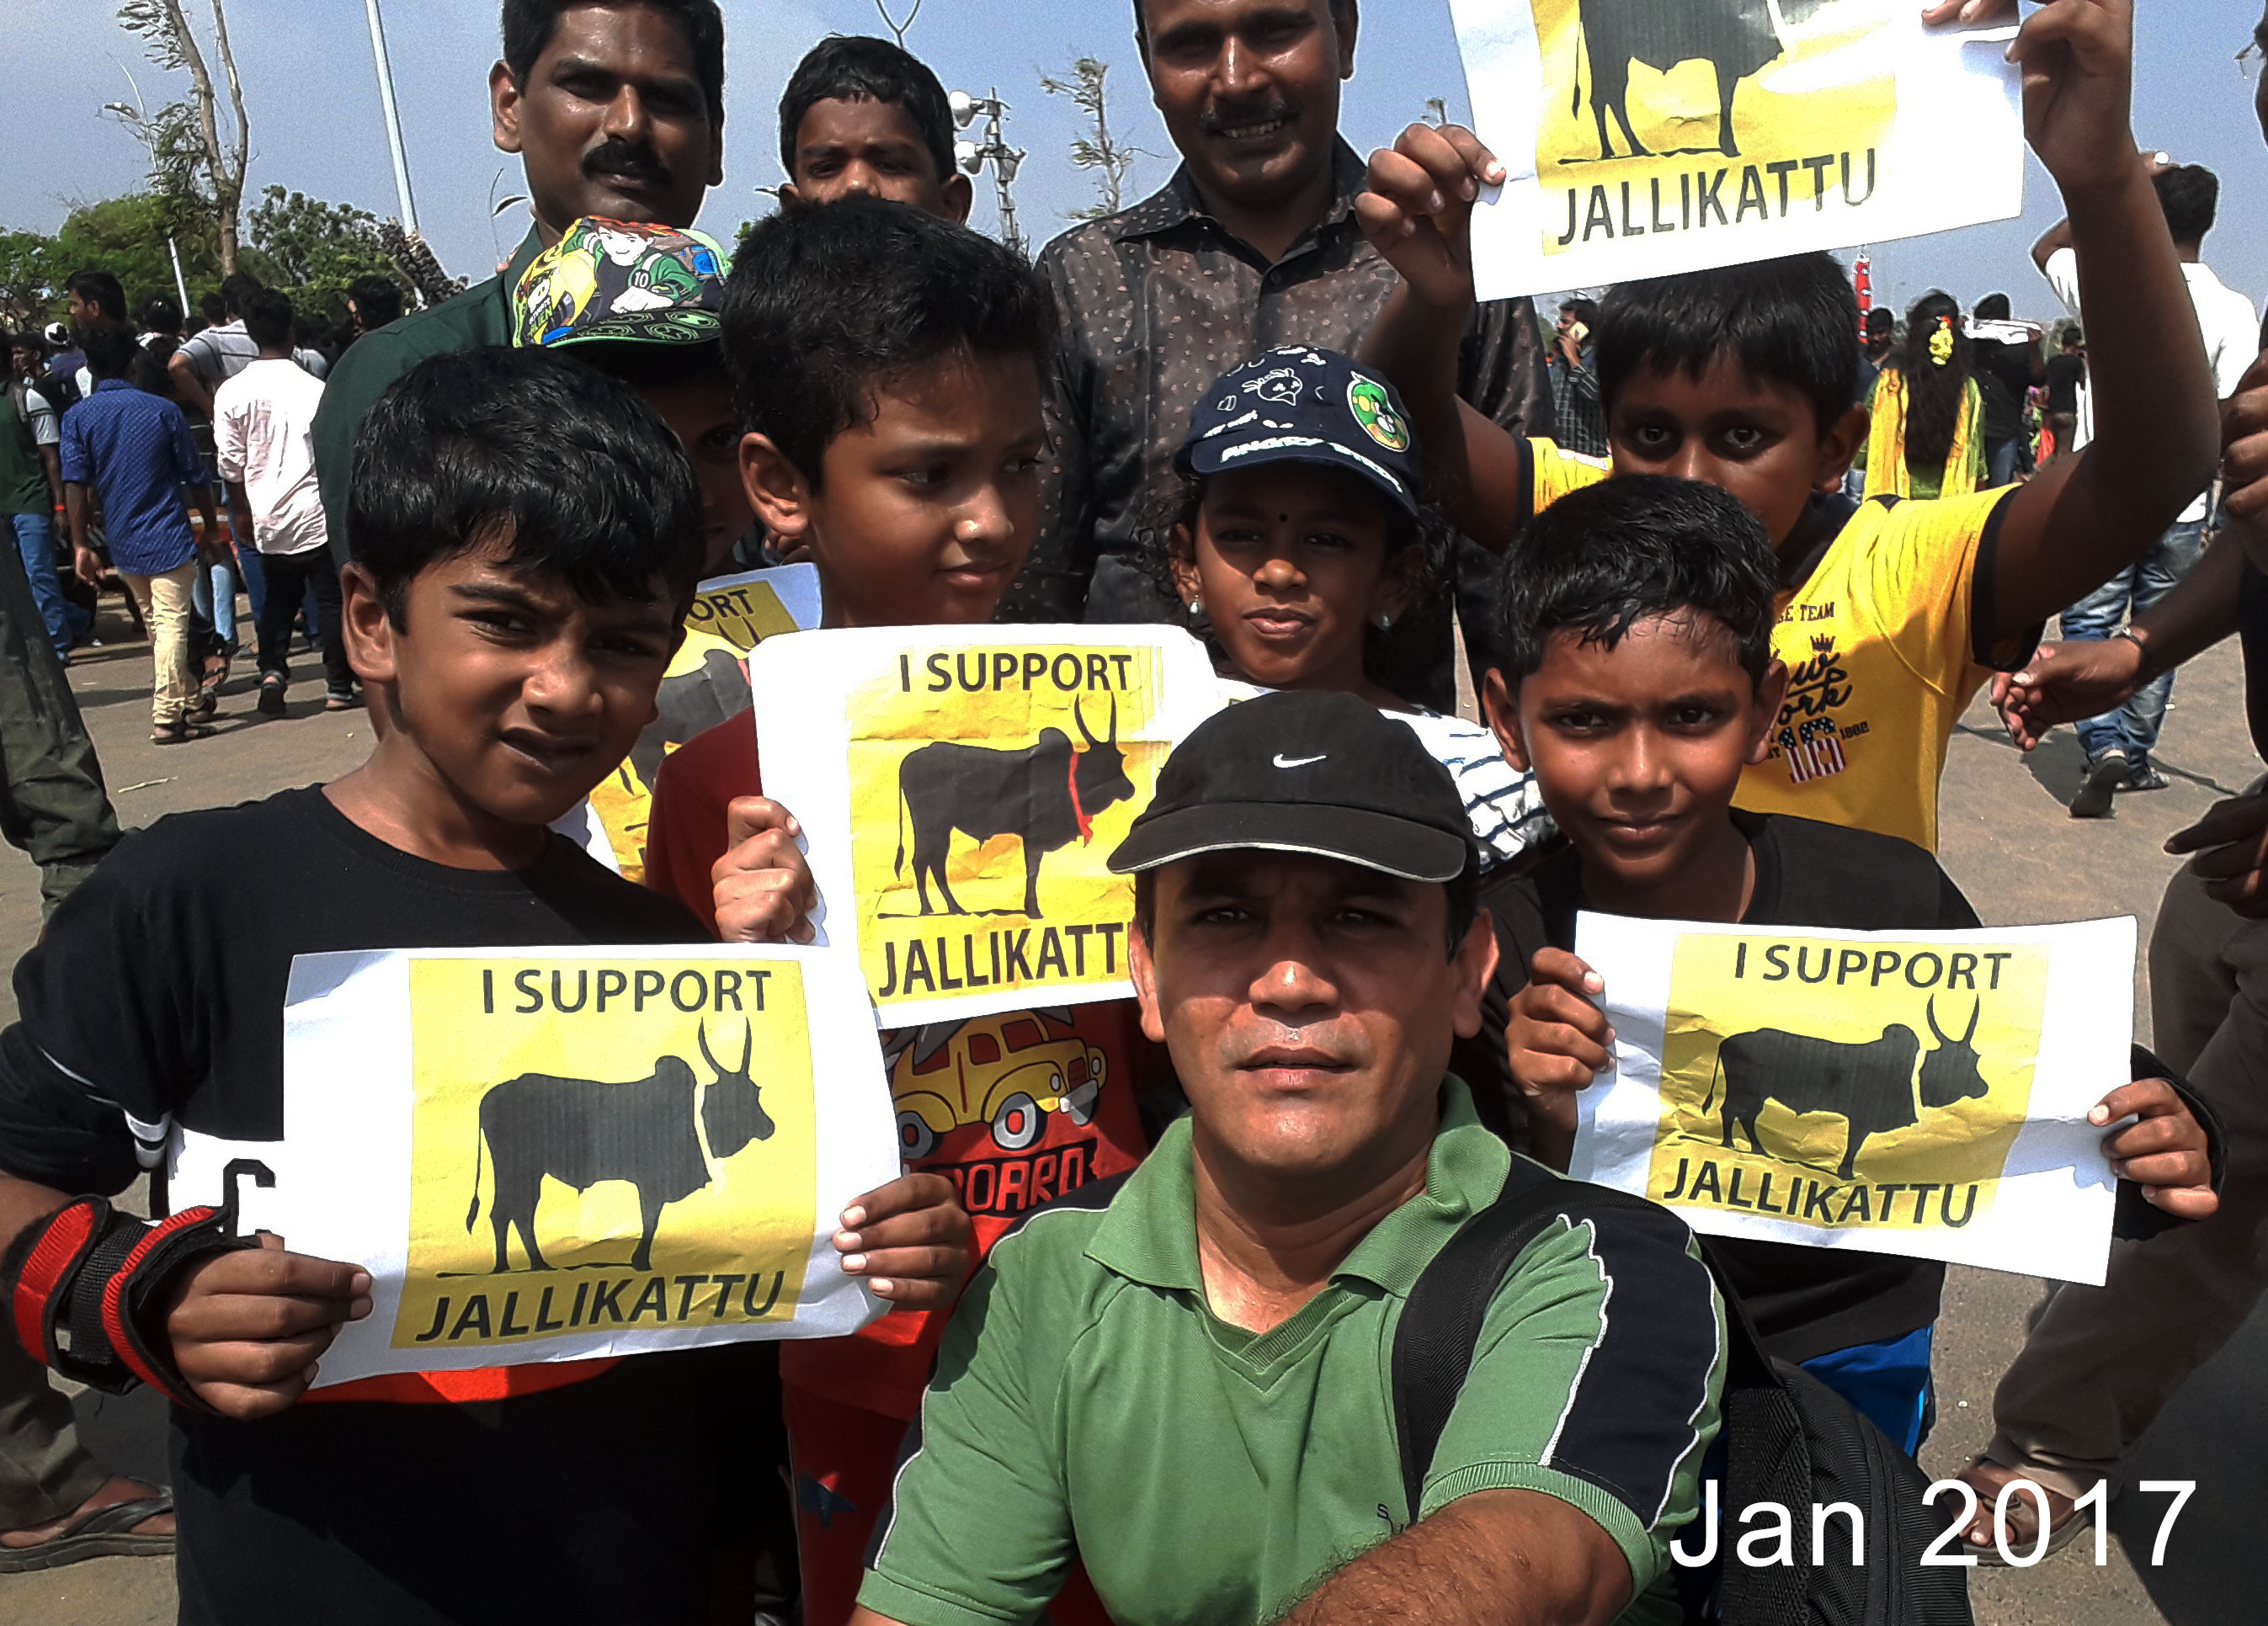 Family protesting in support of Jallikattu